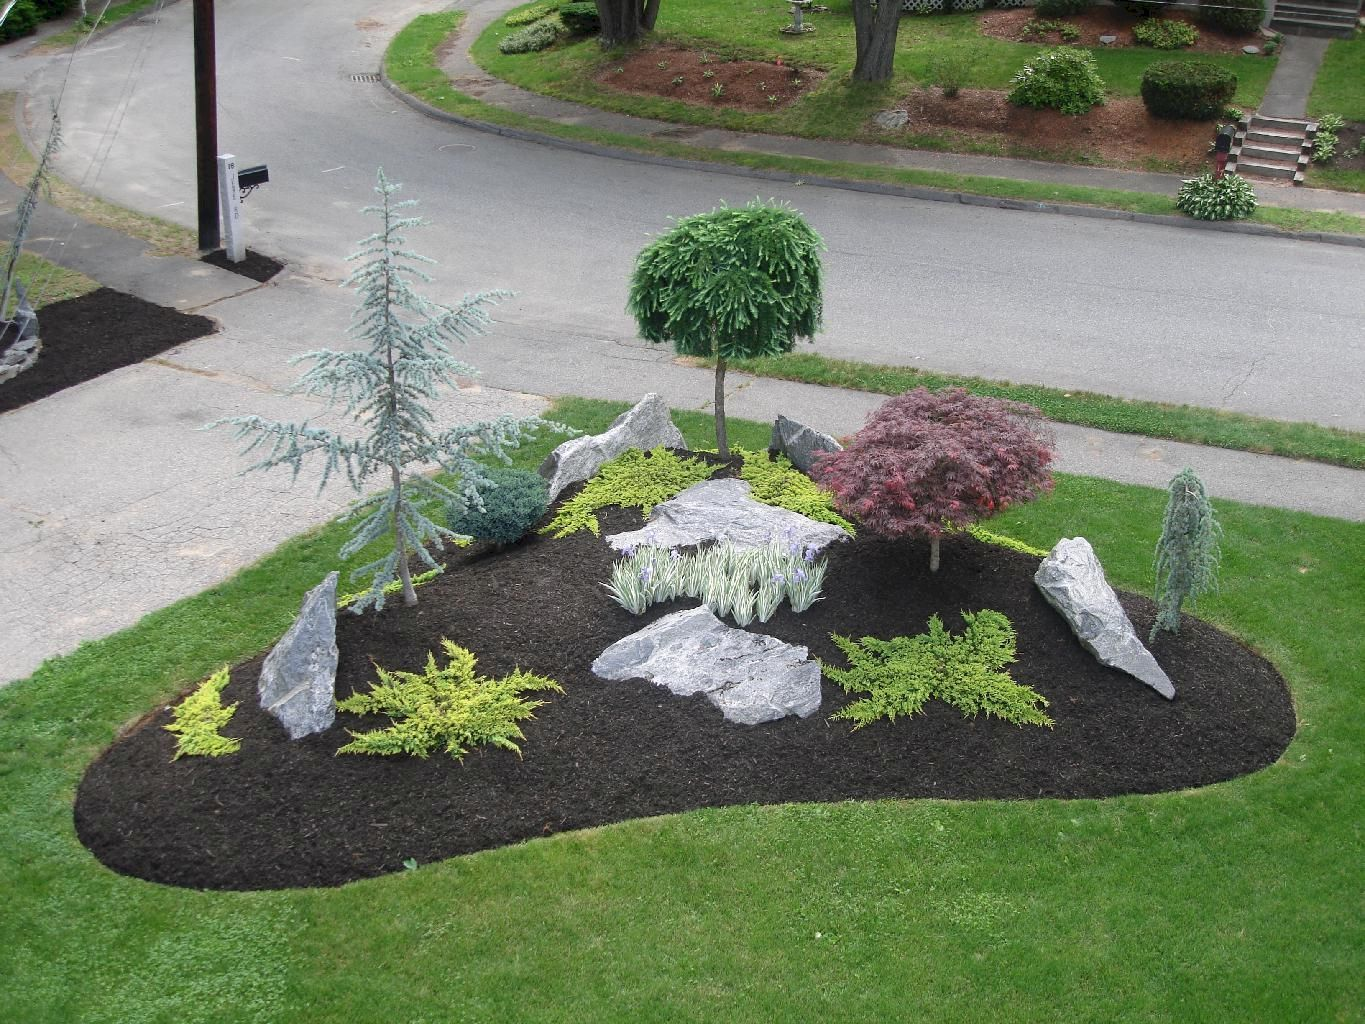 Cool 55 Beautiful Simple Front Yard Landscaping Design Ideas Https Roomaniac Com 55 Front Yard Garden Rock Garden Landscaping Front Yard Landscaping Design